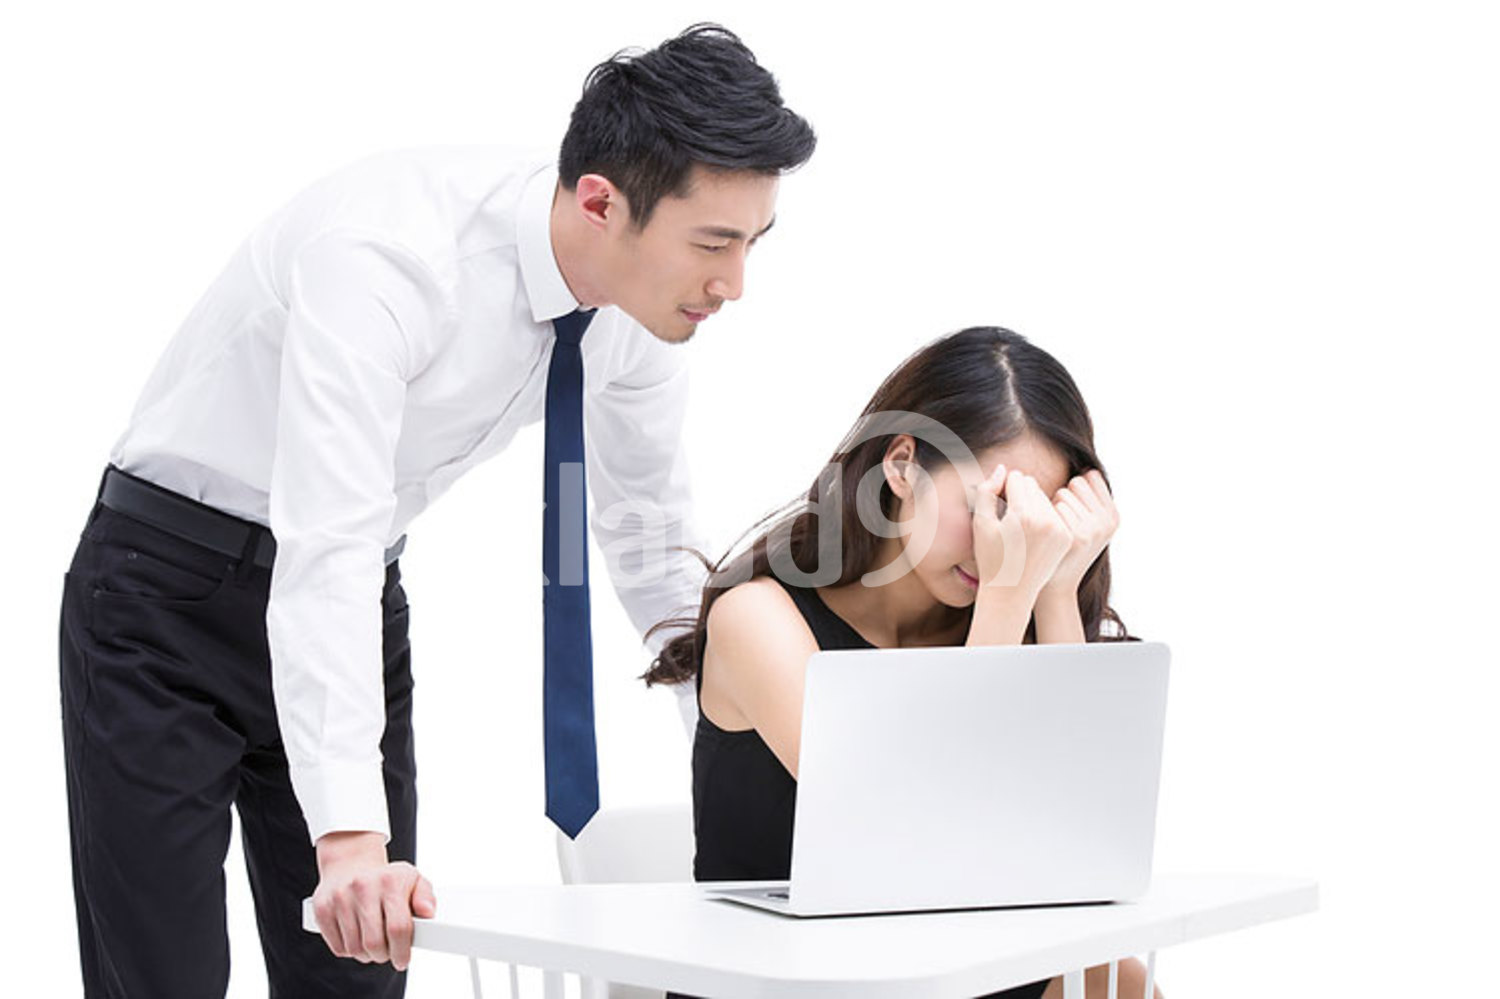 Chinese office workers getting stuck with difficulties